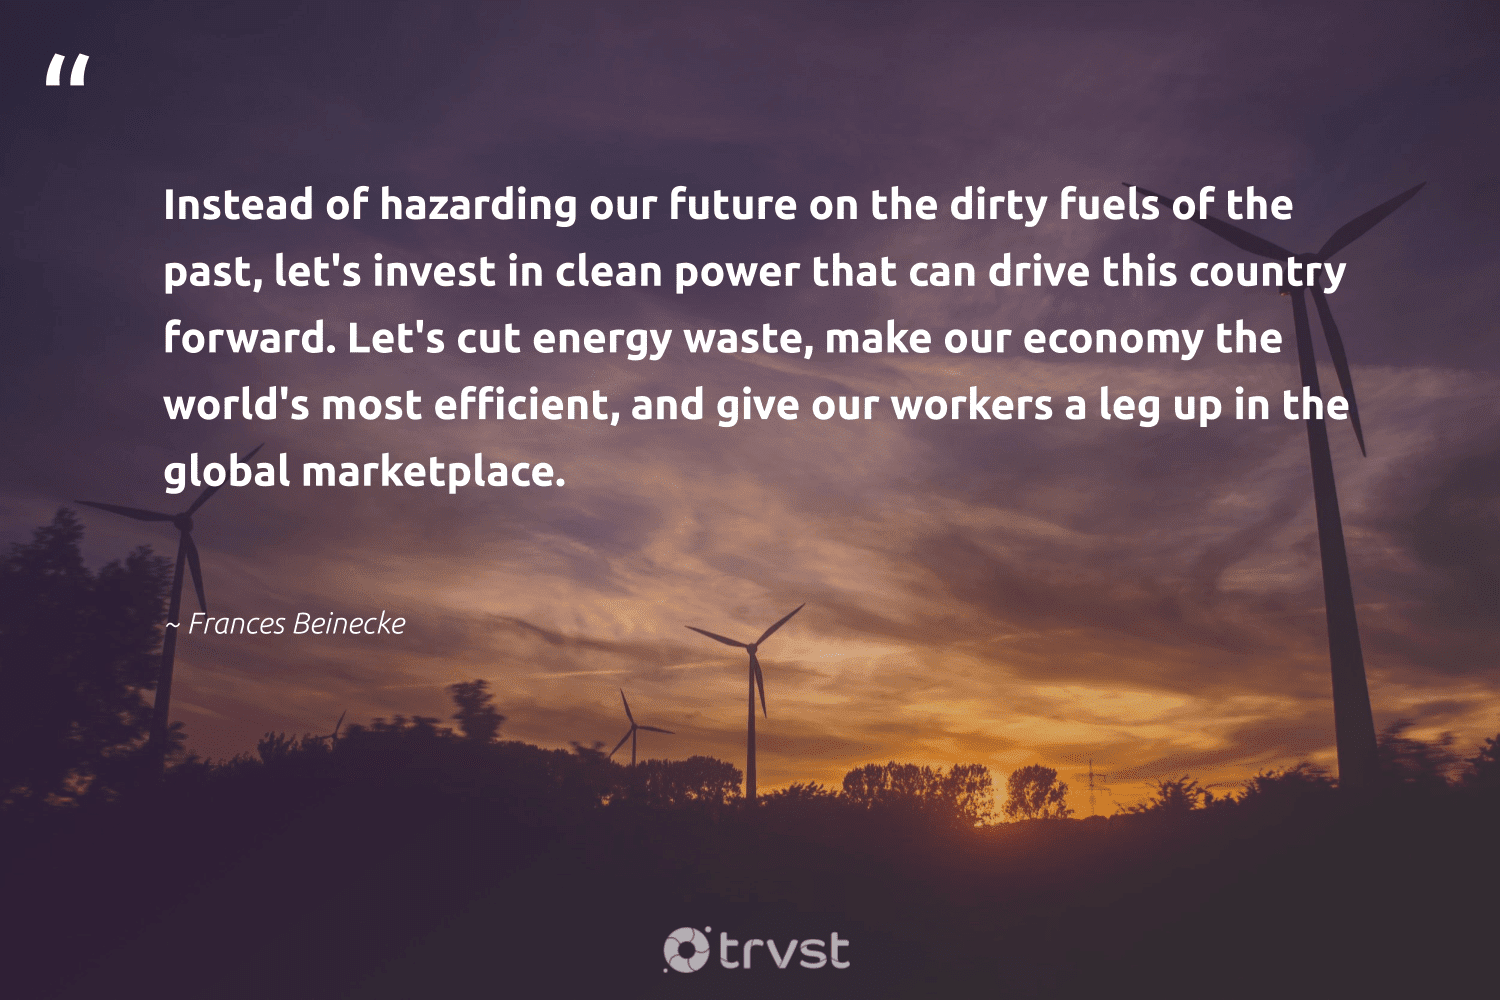 """""""Instead of hazarding our future on the dirty fuels of the past, let's invest in clean power that can drive this country forward. Let's cut energy waste, make our economy the world's most efficient, and give our workers a leg up in the global marketplace.""""  - Frances Beinecke #trvst #quotes #waste #energy #climatechange #dogood #carbonfree #thinkgreen #sustainability #socialchange #carboncapture #impact"""